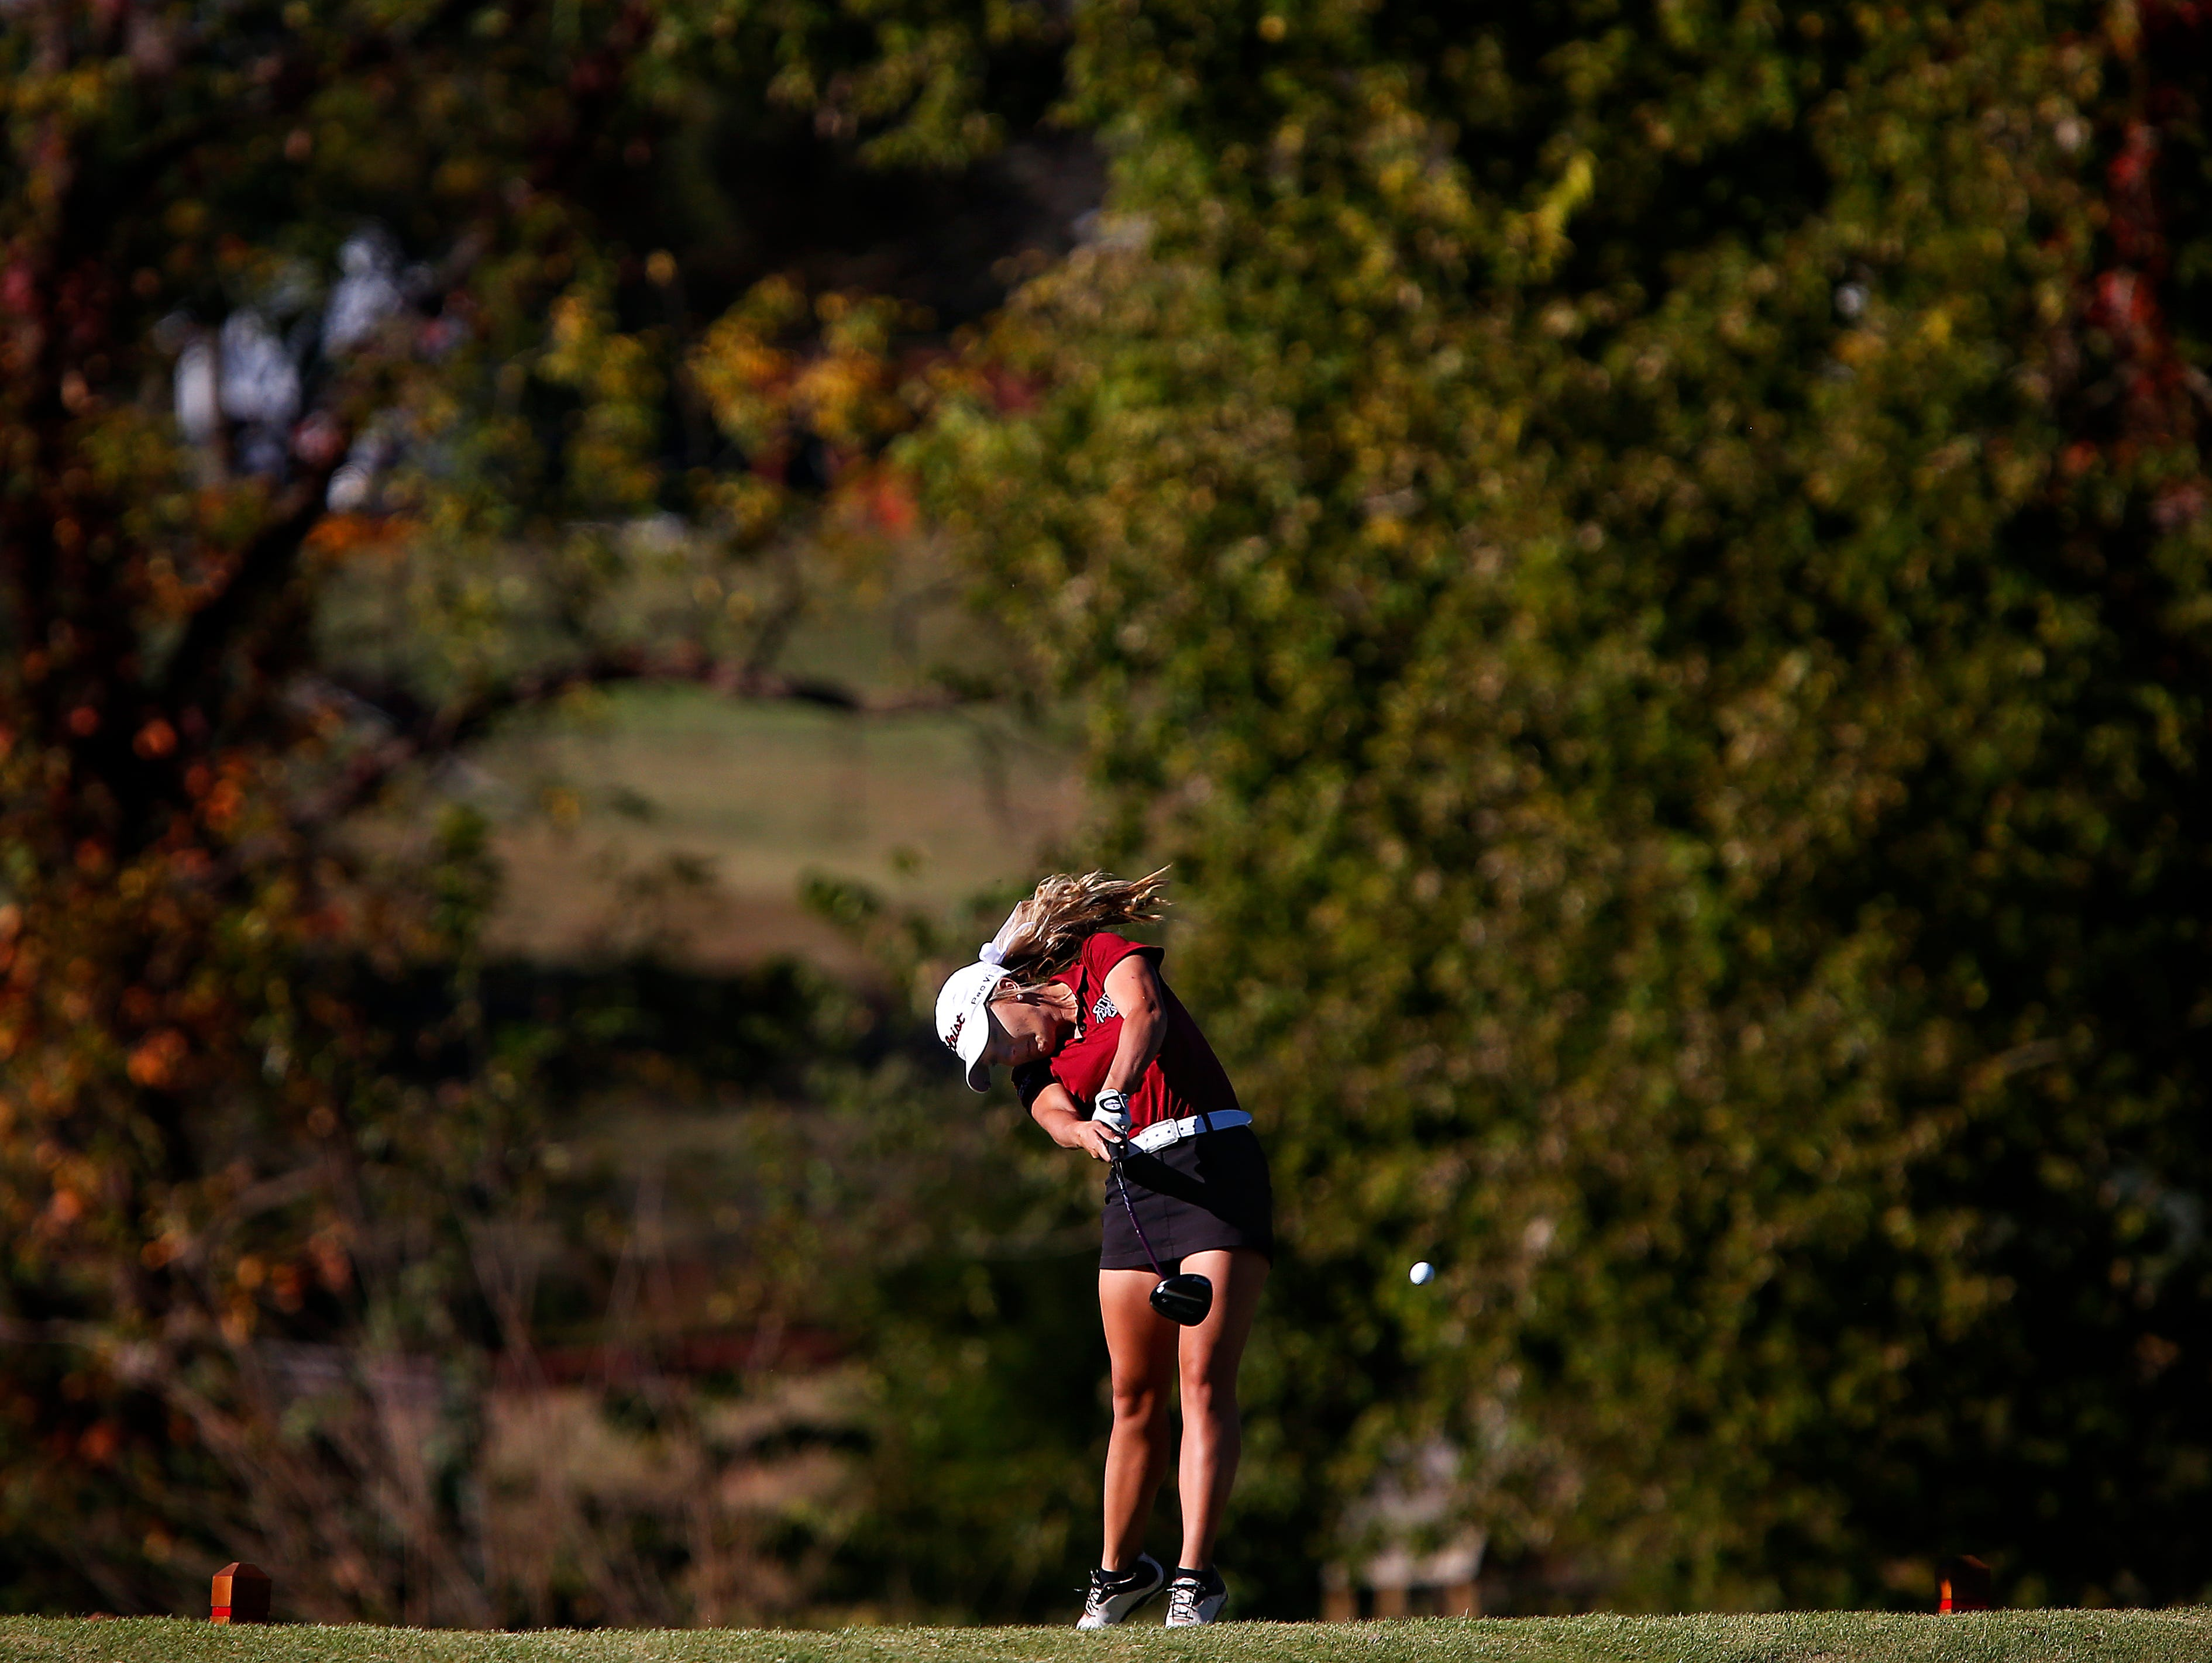 Warrensburg High School golfer Taylor BeDell tees off from the 18th hole during the 2015 MSHSAA Class 2 Girls Golf State Championship played at Rivercut Golf Club in Springfield, Mo. on Oct. 13, 2015. BeDell barely avoided a playoff with Kickapoo's Ari Acuff after Acuff missed an eagle putt on the 18th to give BeDell the state title.